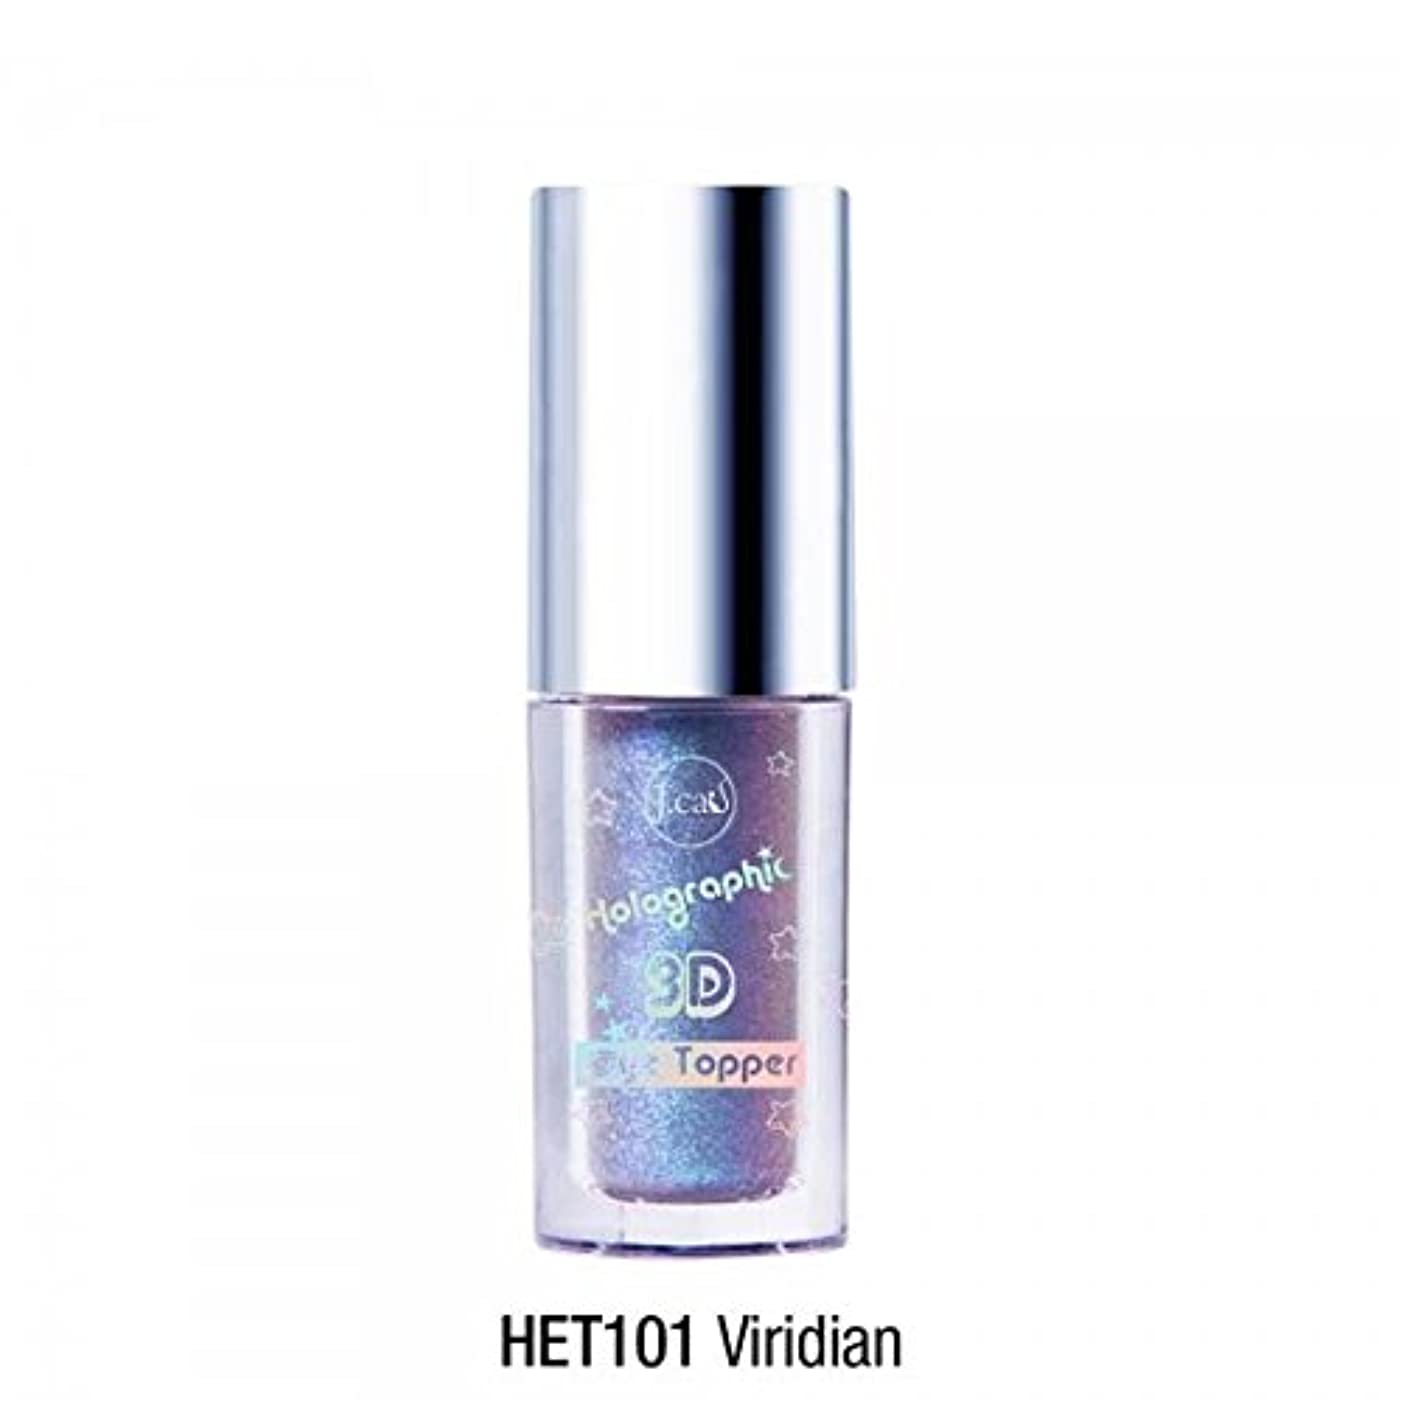 あいまいな太鼓腹不倫(3 Pack) J. CAT BEAUTY Holographic 3d Eye Topper - Viridian (並行輸入品)